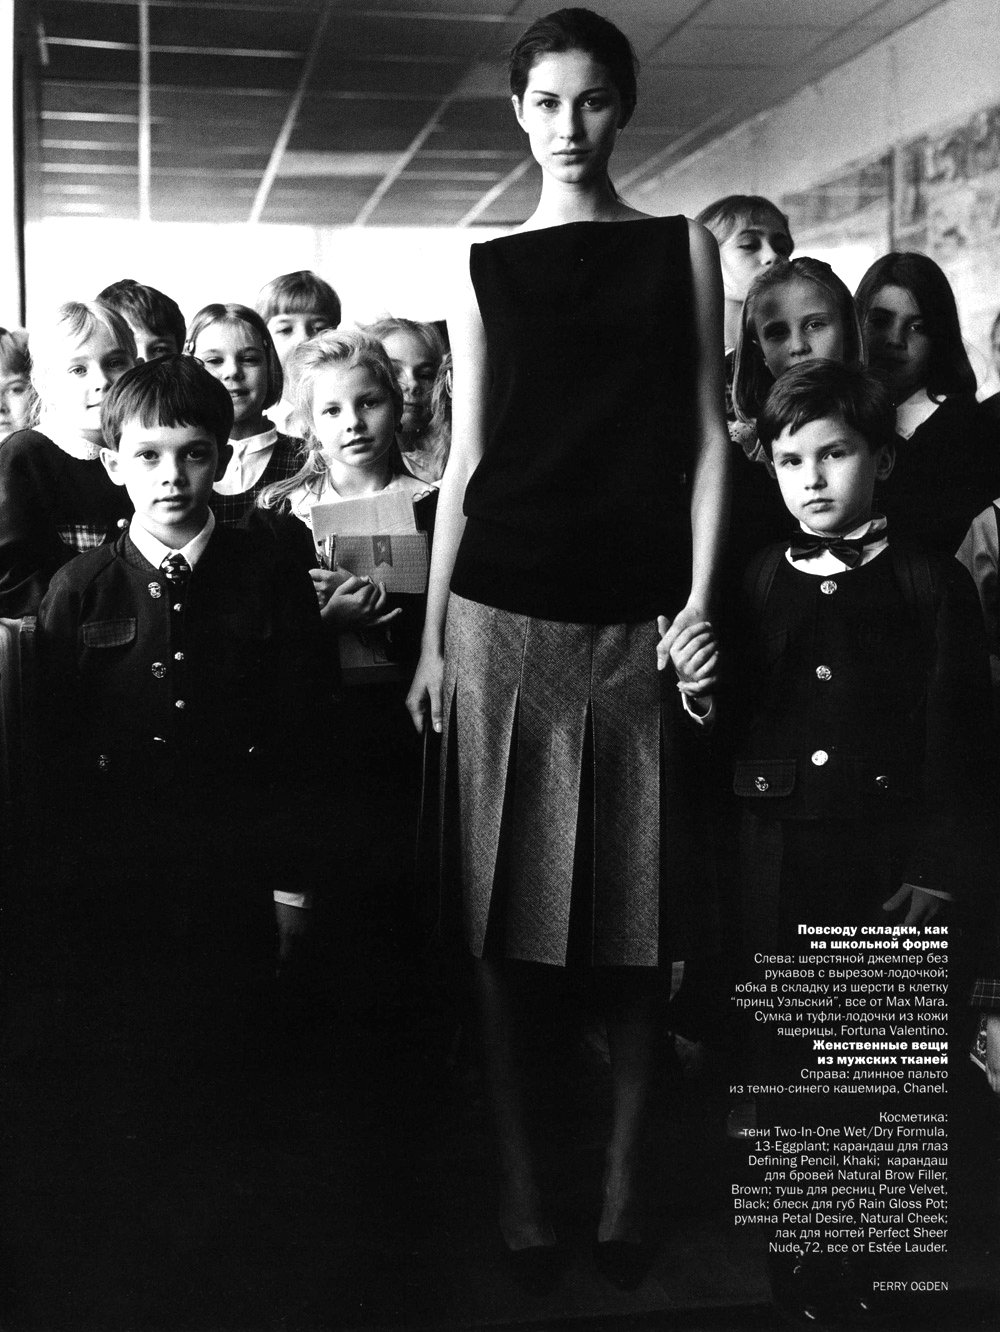 Gisele Bundchen in My favourite big sister / Vogue Russia September 1998 (photography: Perry Ogden, styling: Katharina Flohr)